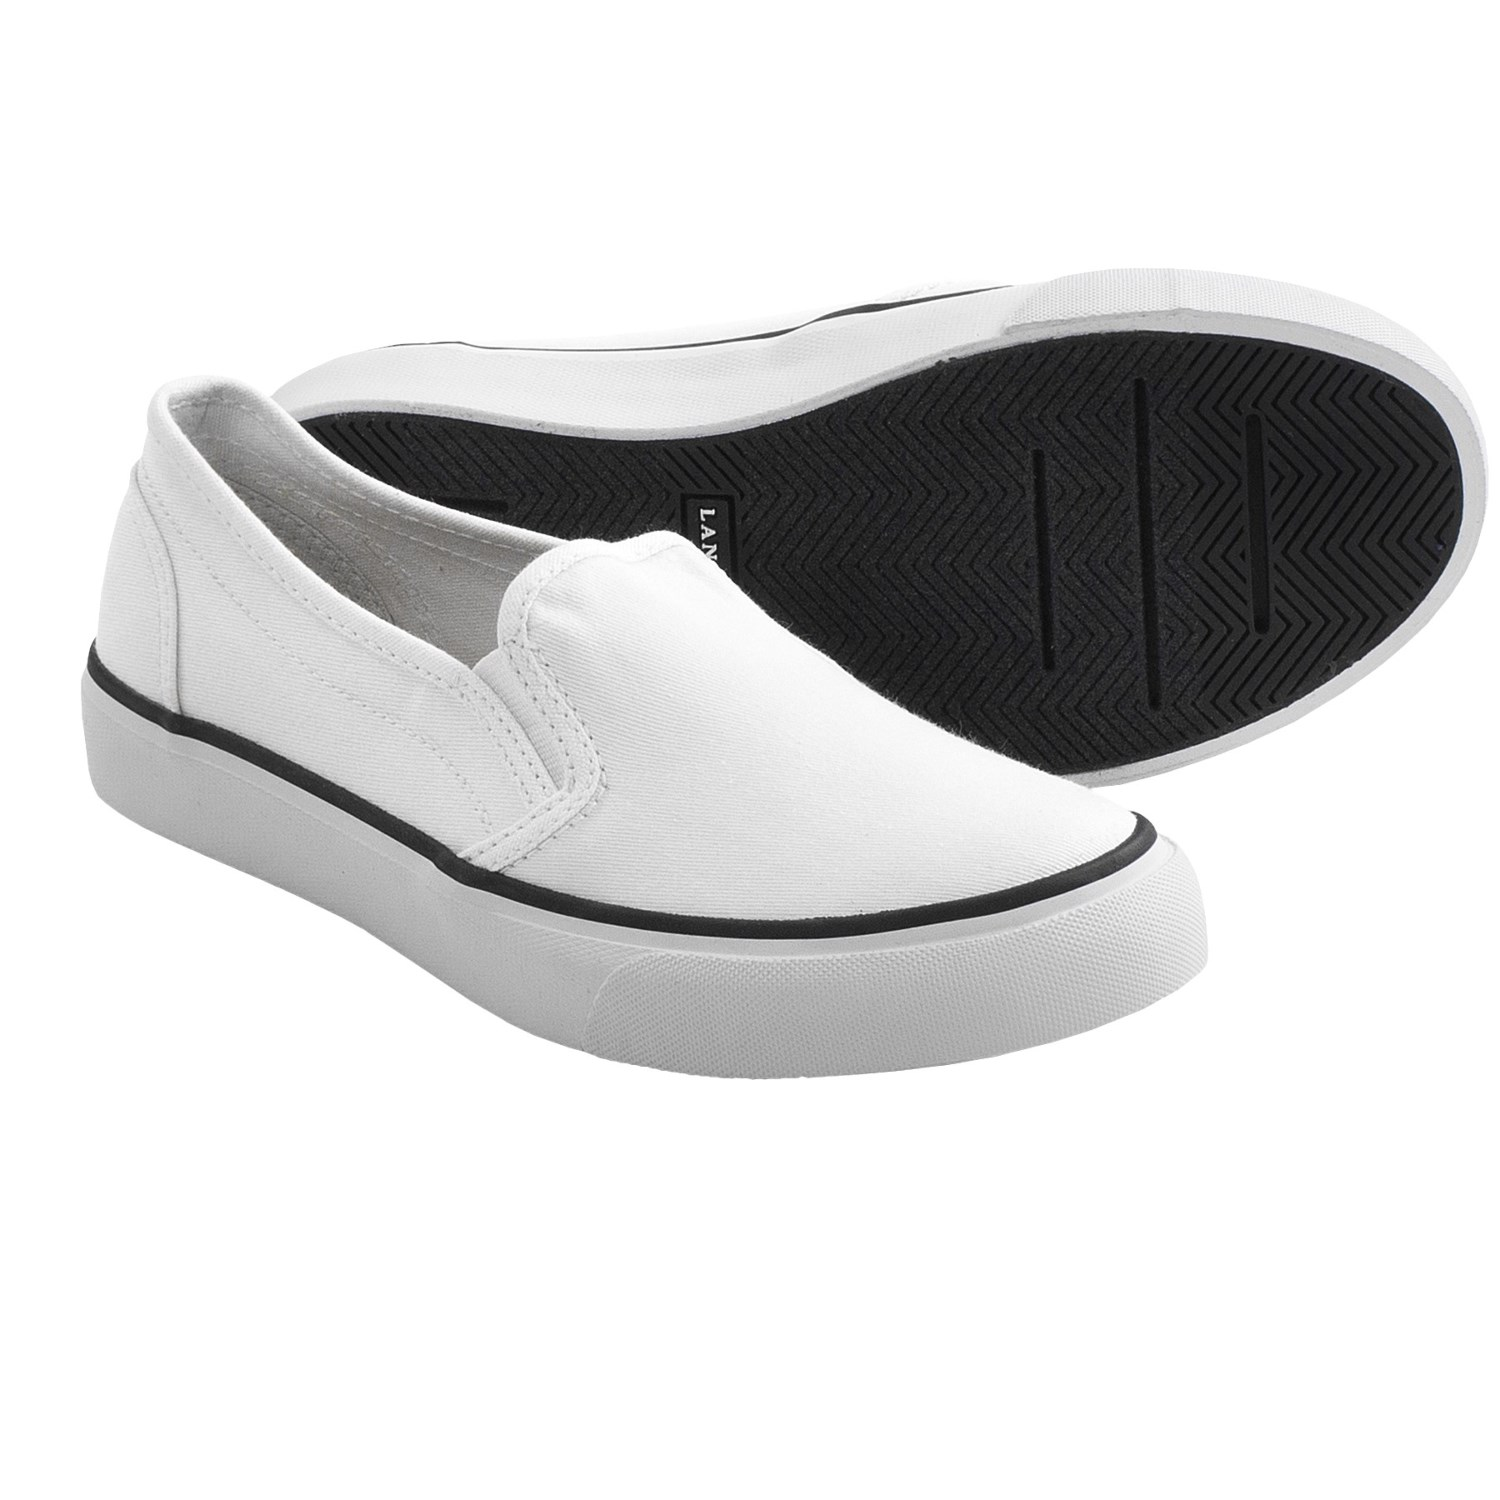 lands end mainstay slip on shoes canvas for and